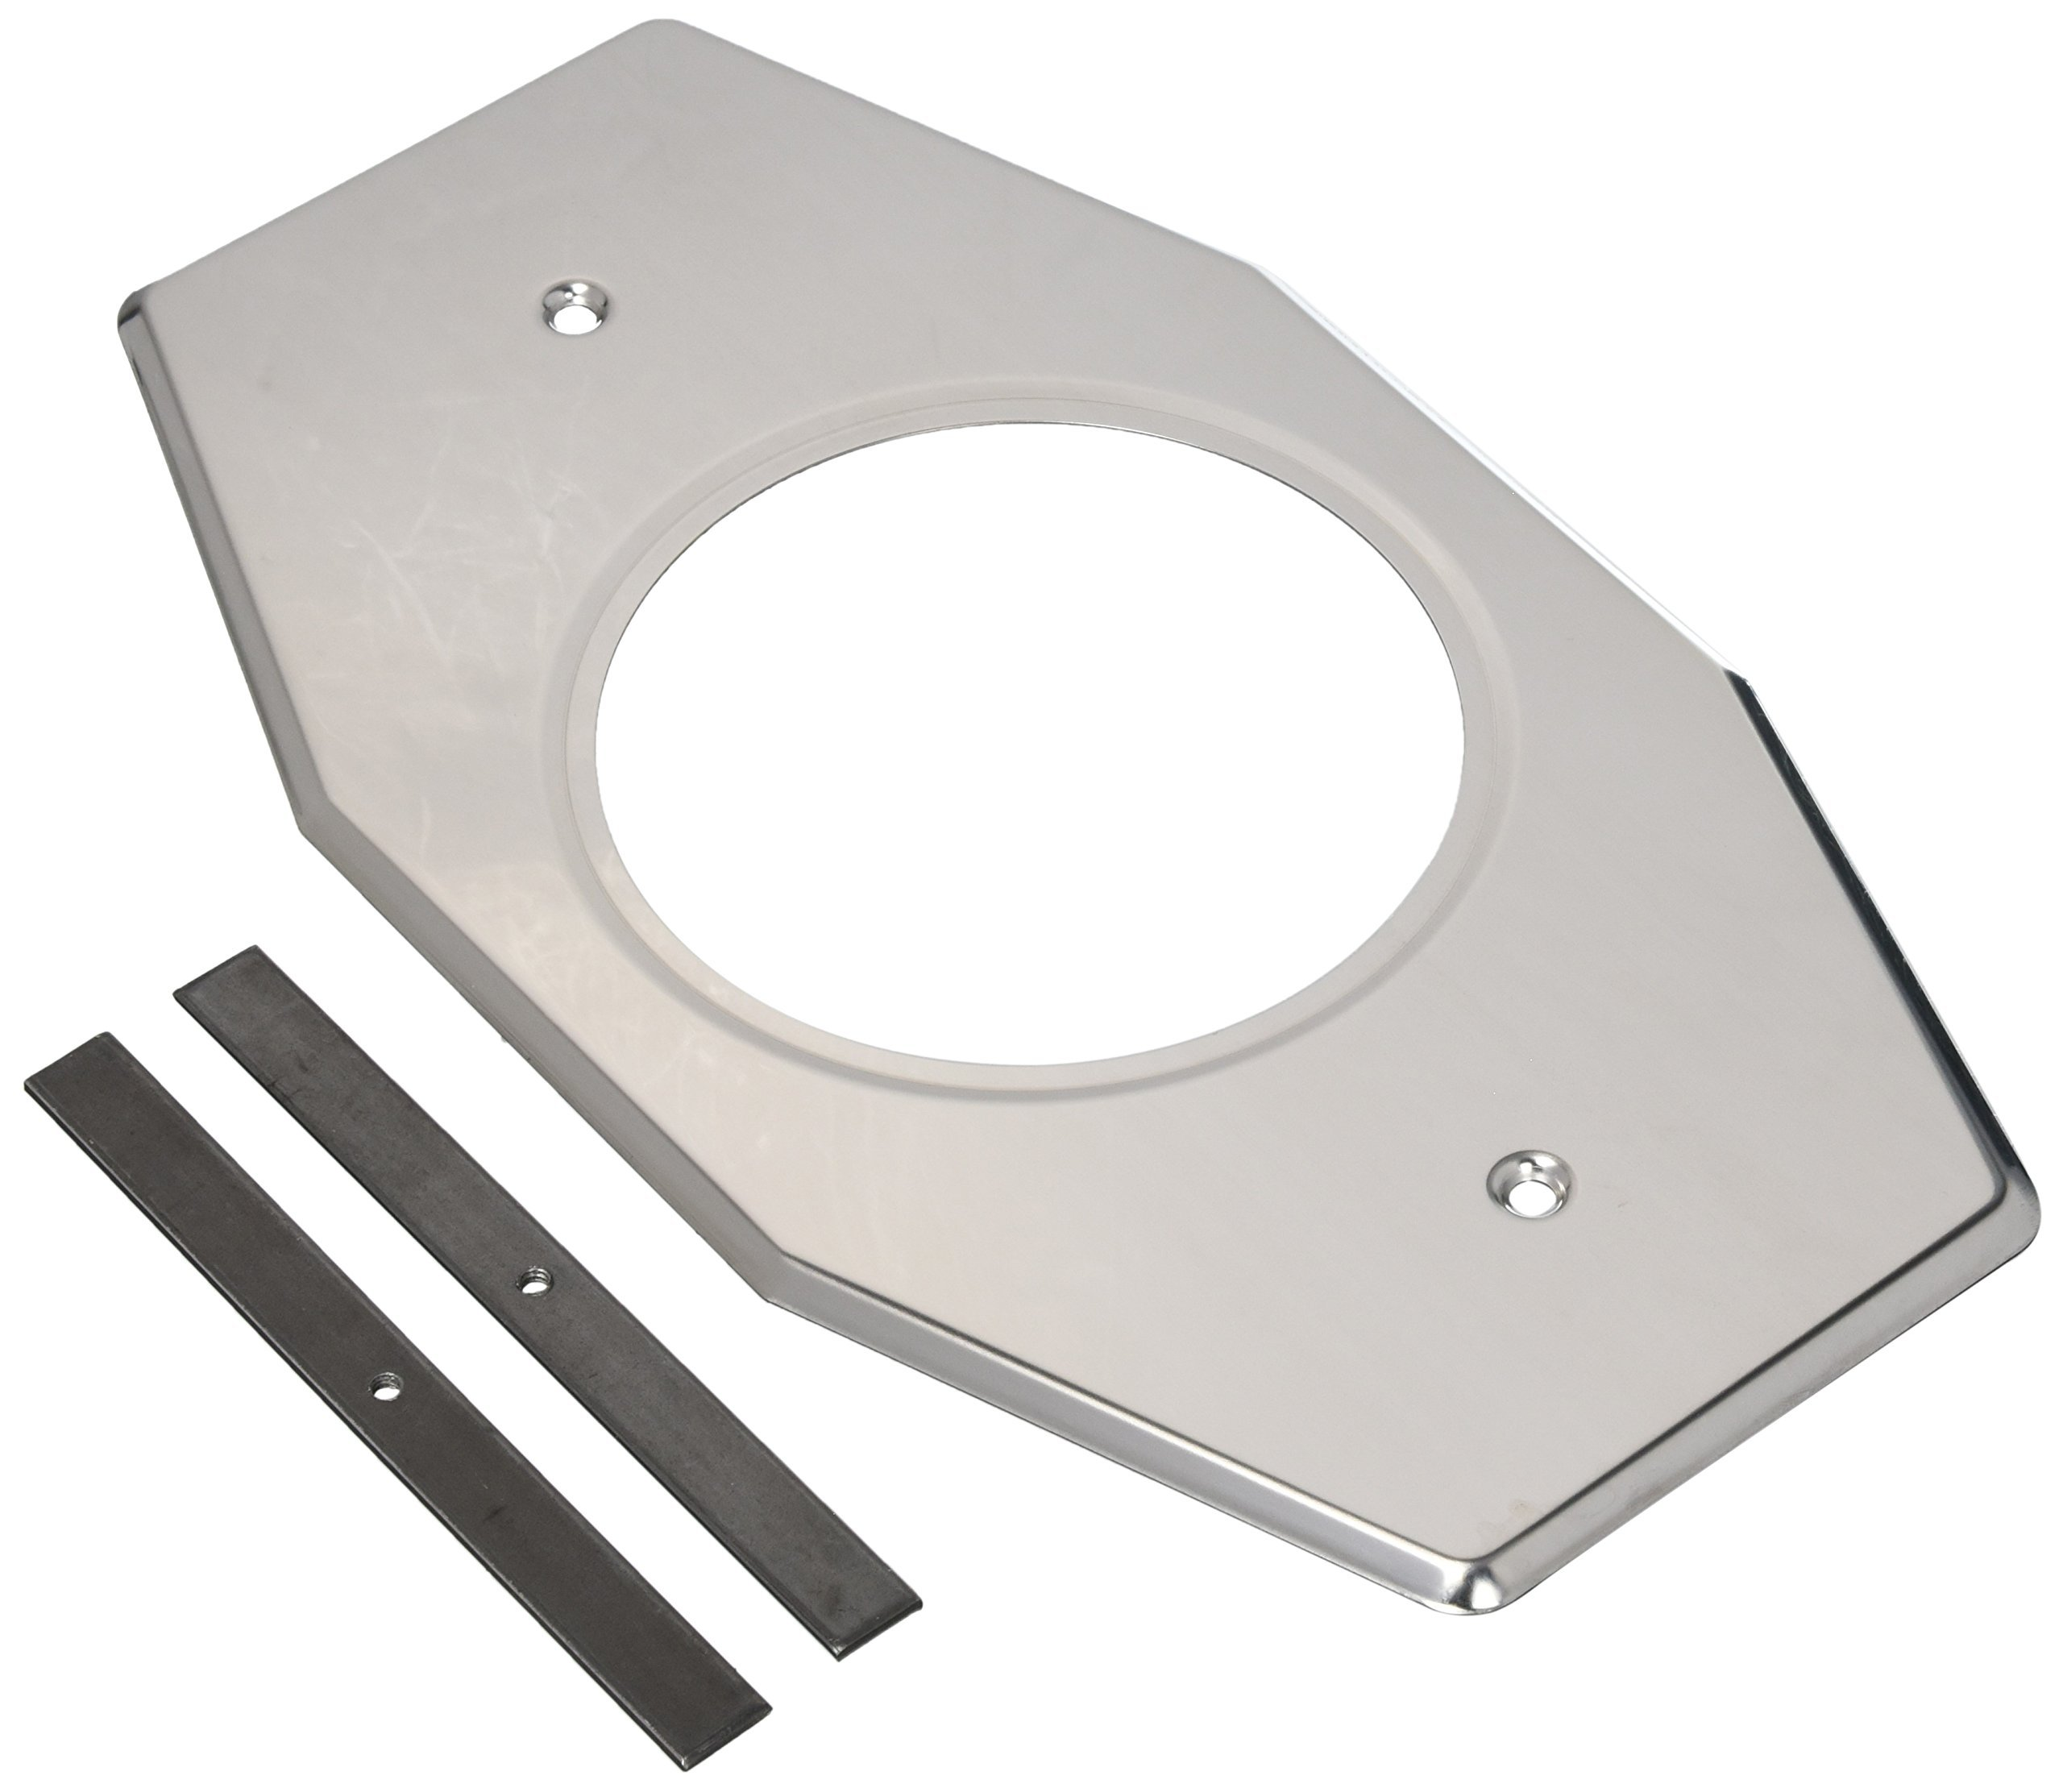 Symmons T73815 Stainless Steel Cover Plate